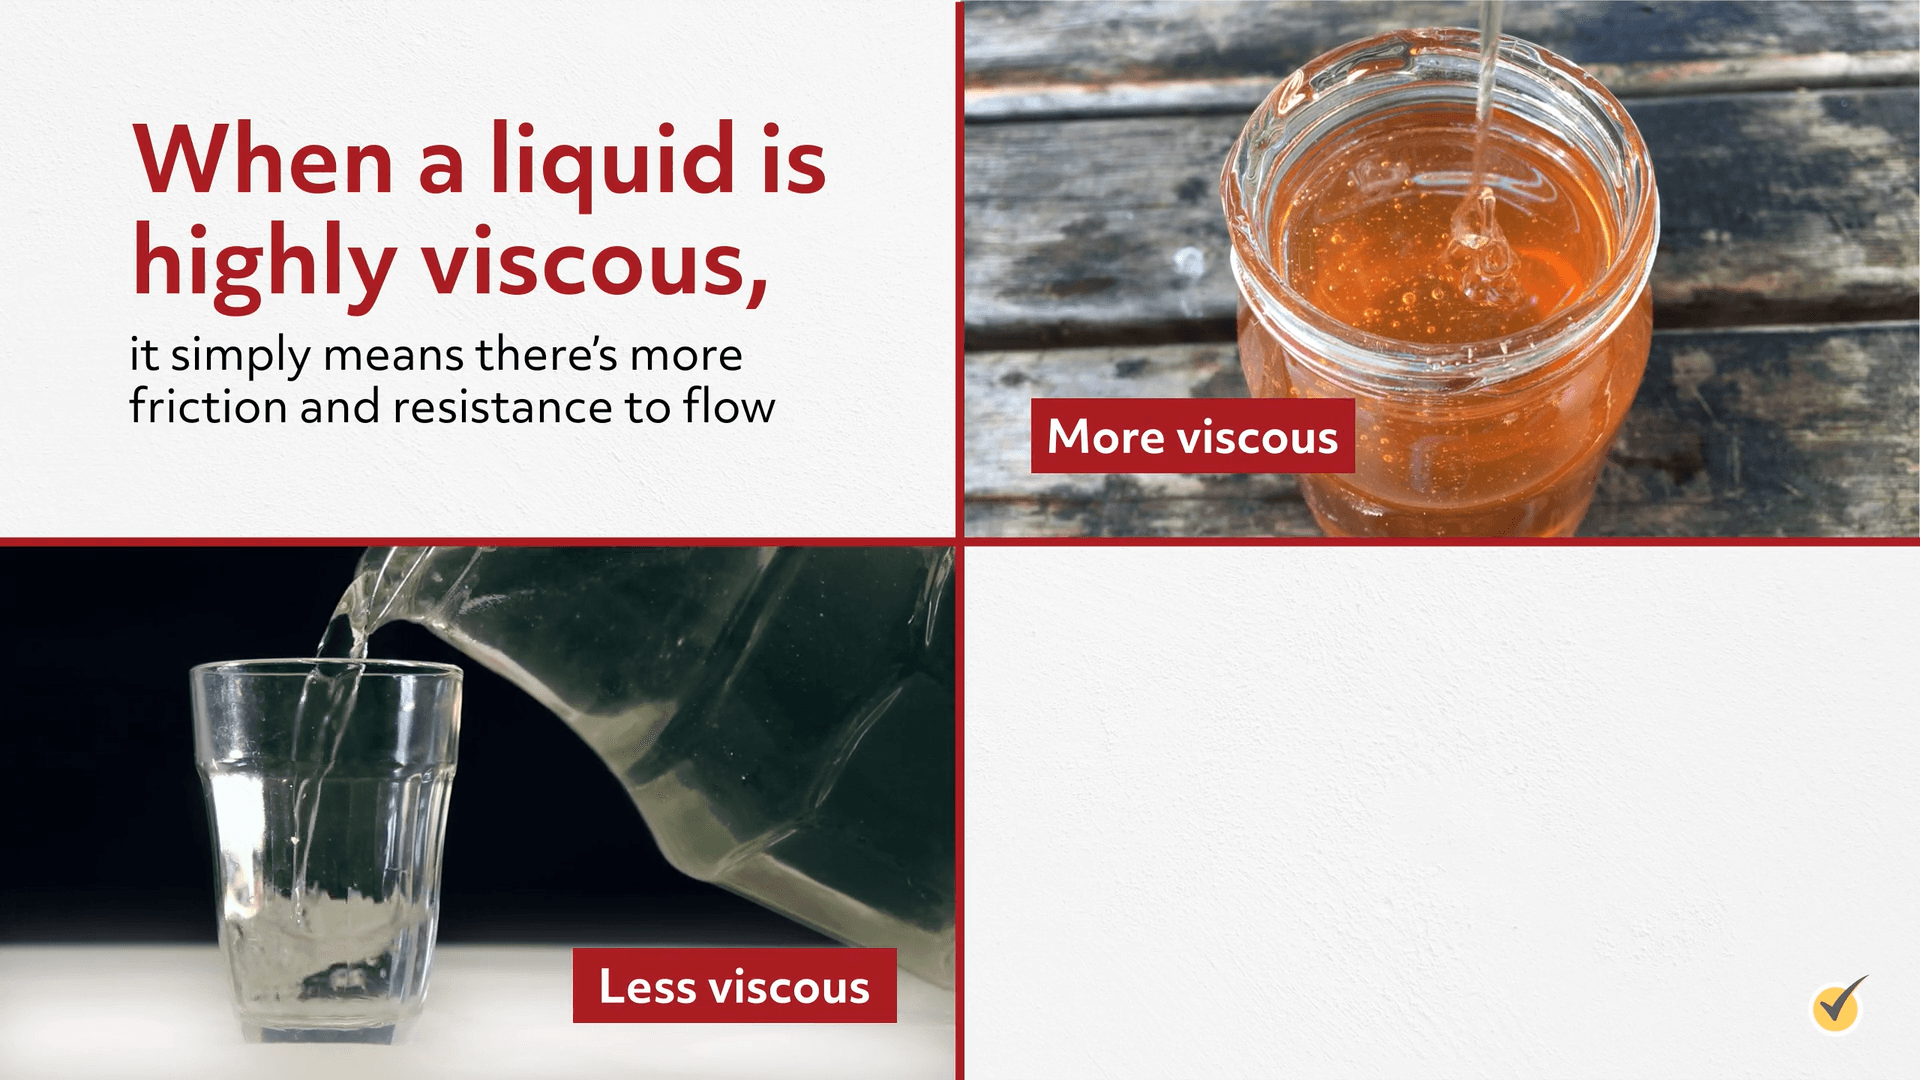 Example of a less vicious substance (water), and a highly viscous substance (honey).